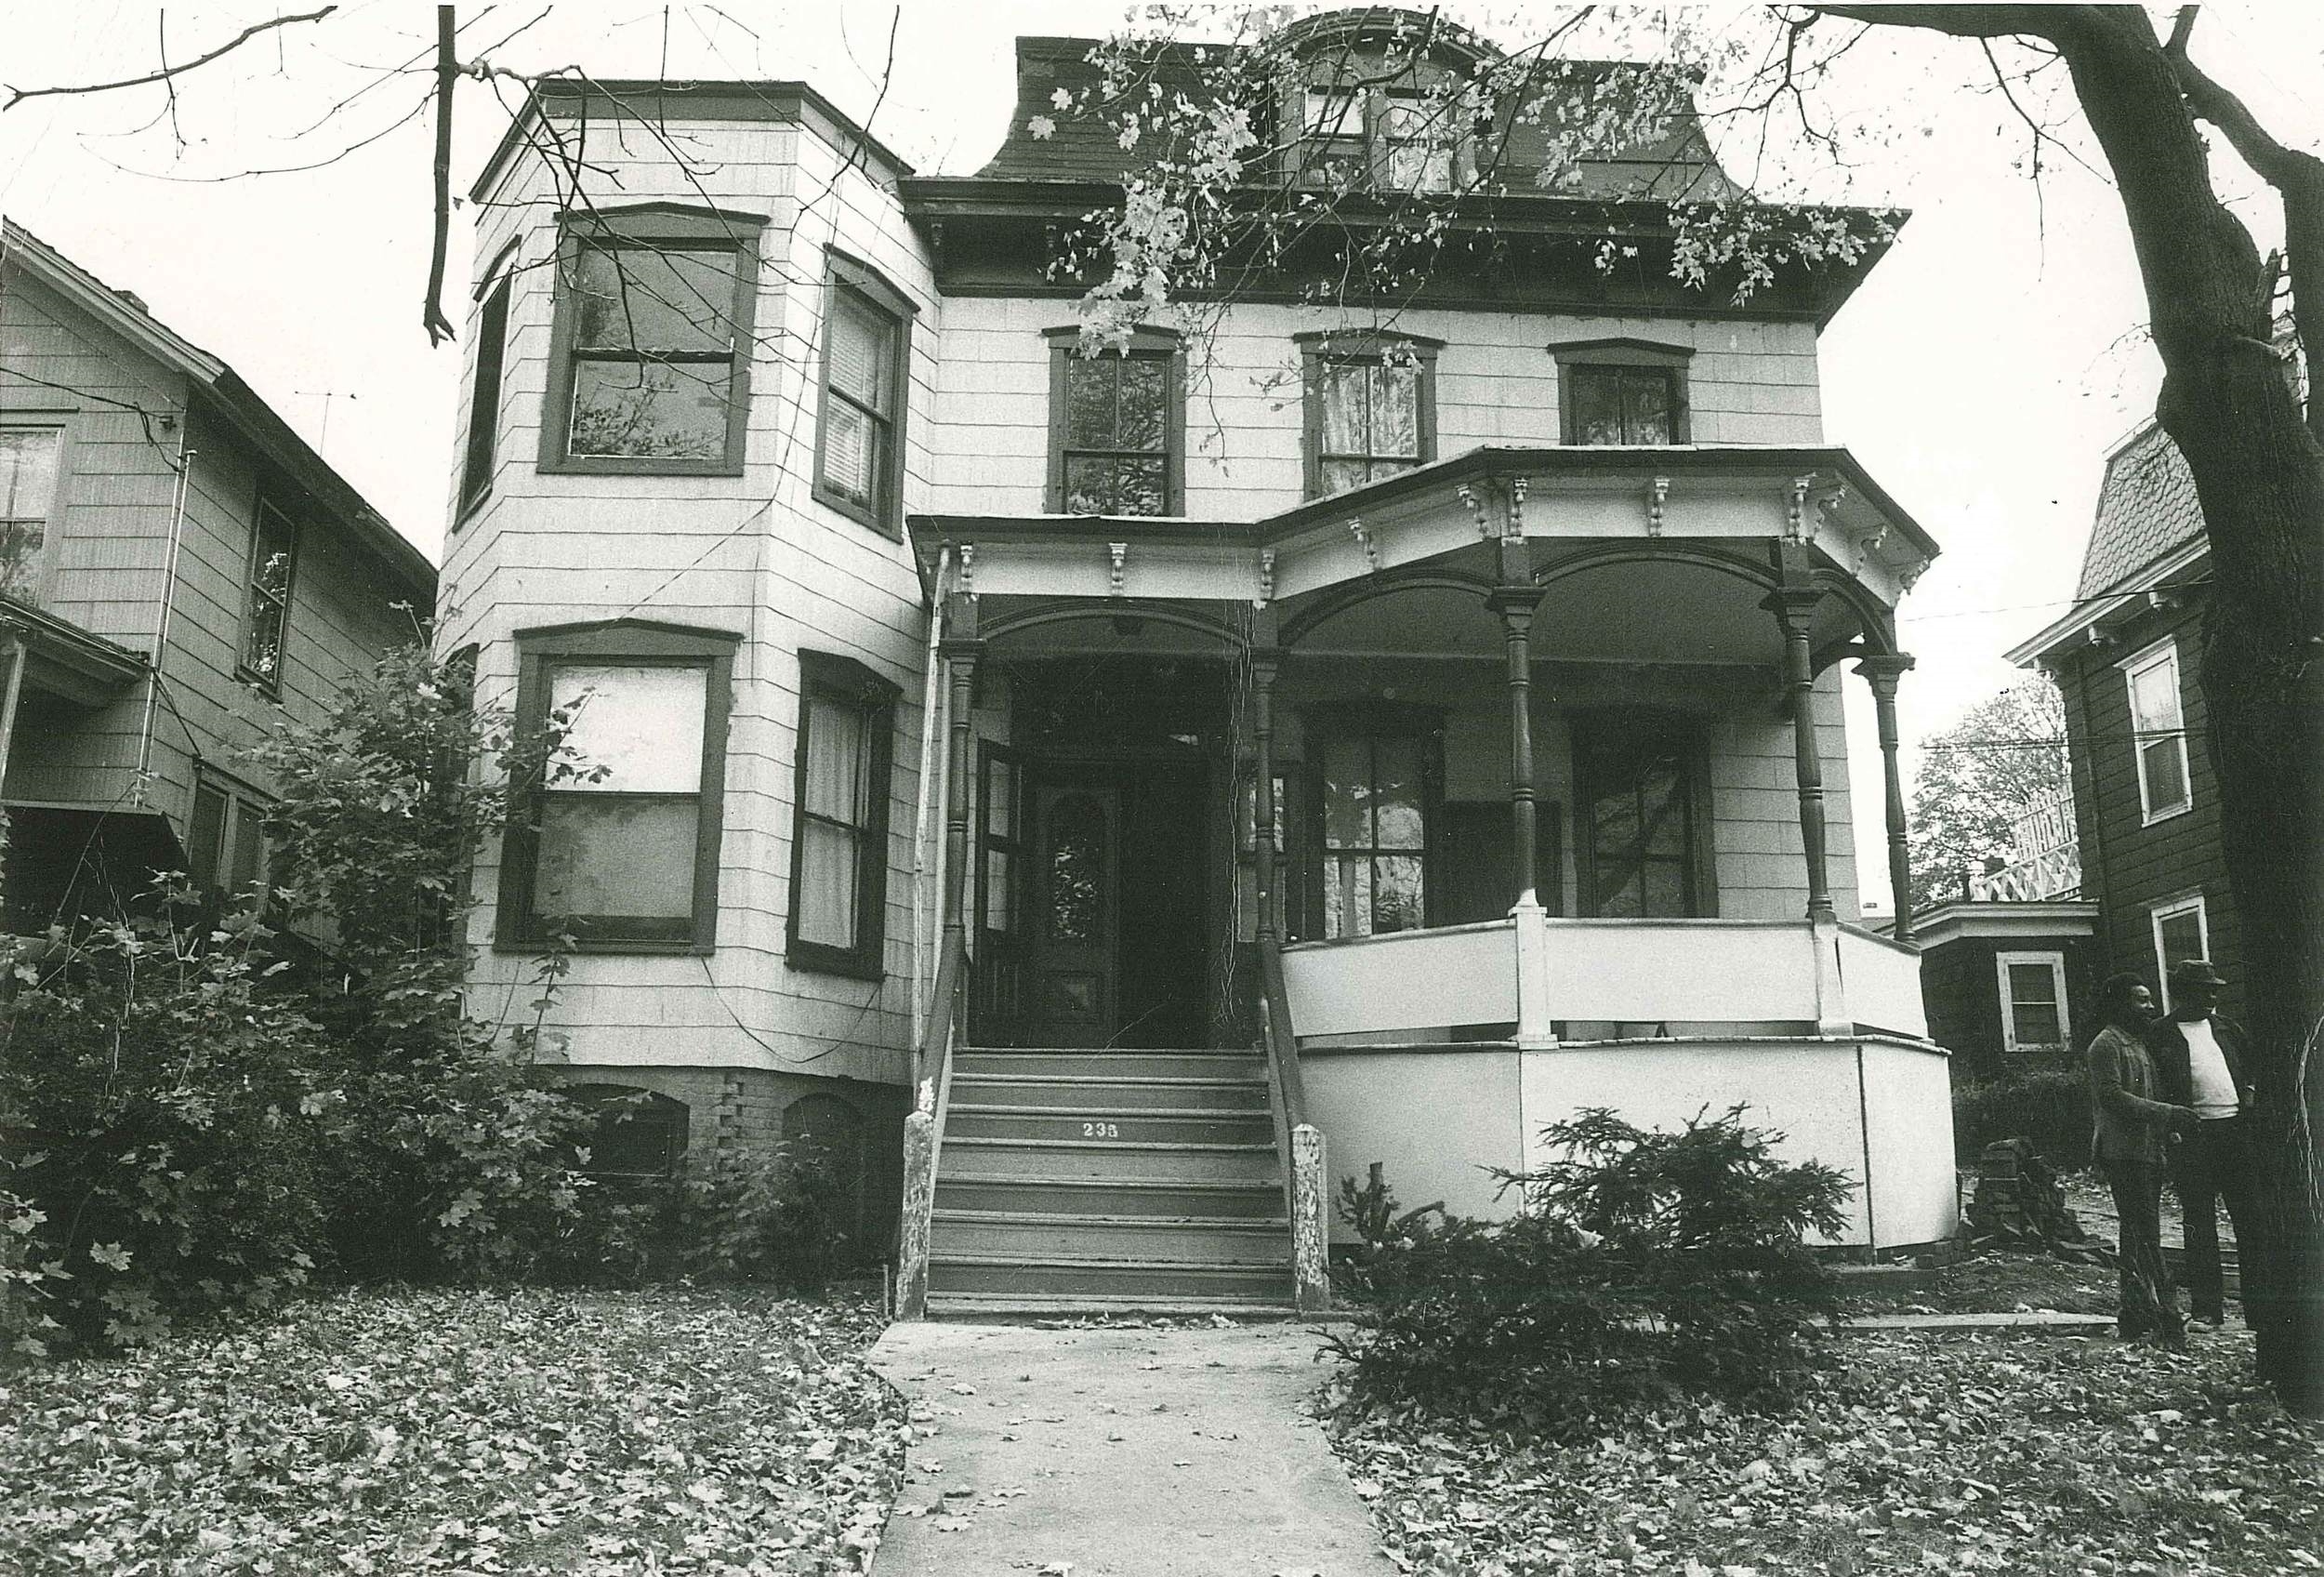 IFCA's first property, 235 spring street, ossining, ny. As it was in 1973